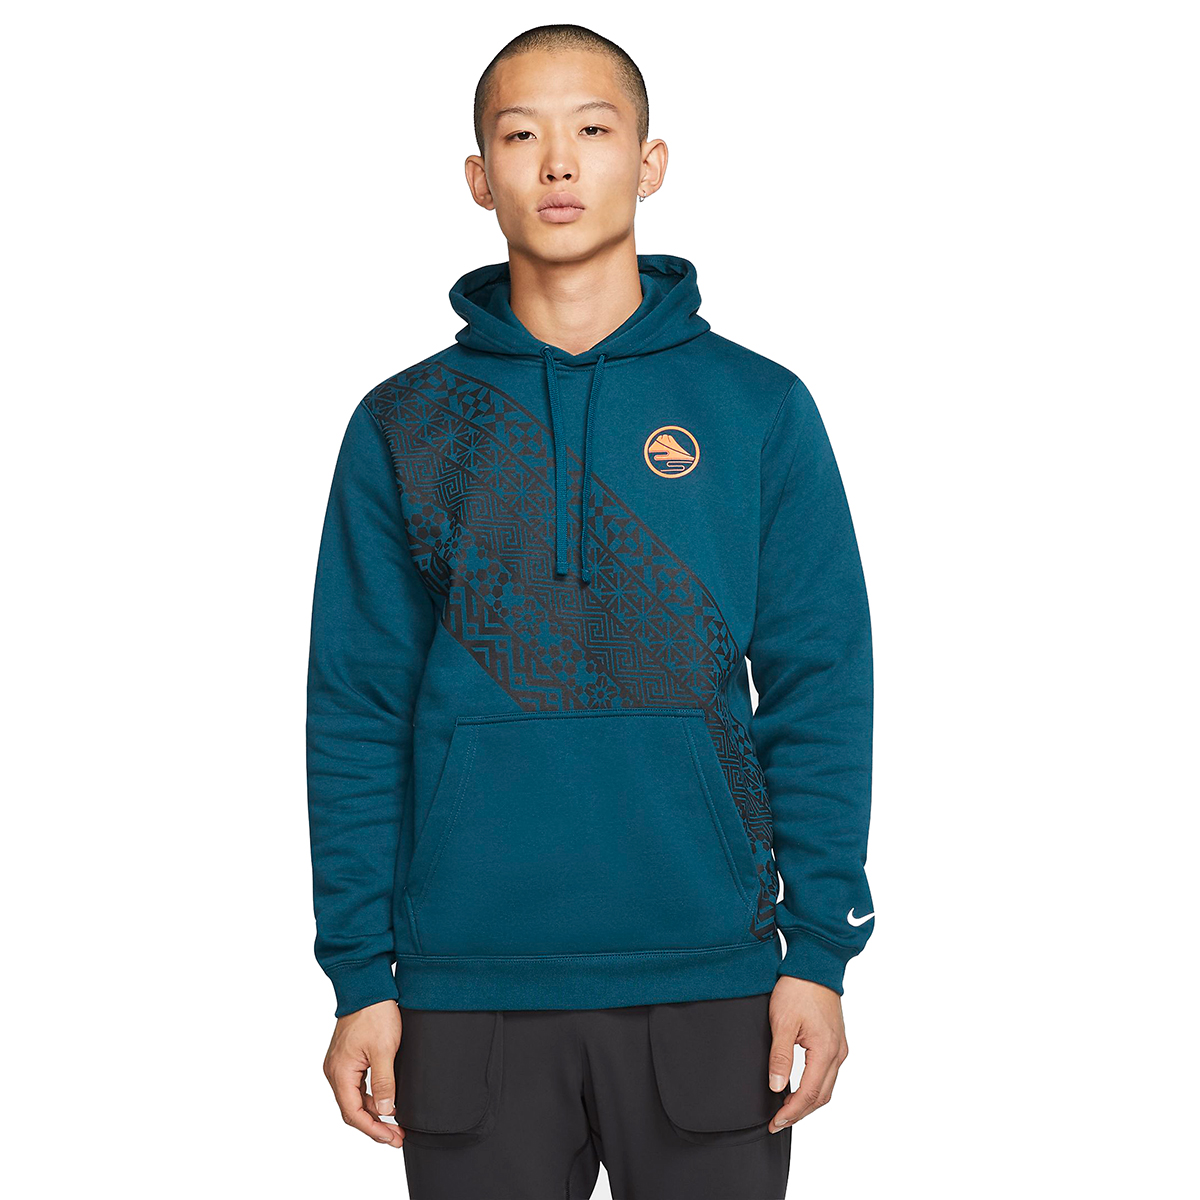 Men's Nike Club Pullover Hoodie  - Color: Midnight Turquoise - Size: XS, Midnight Turquoise, large, image 1